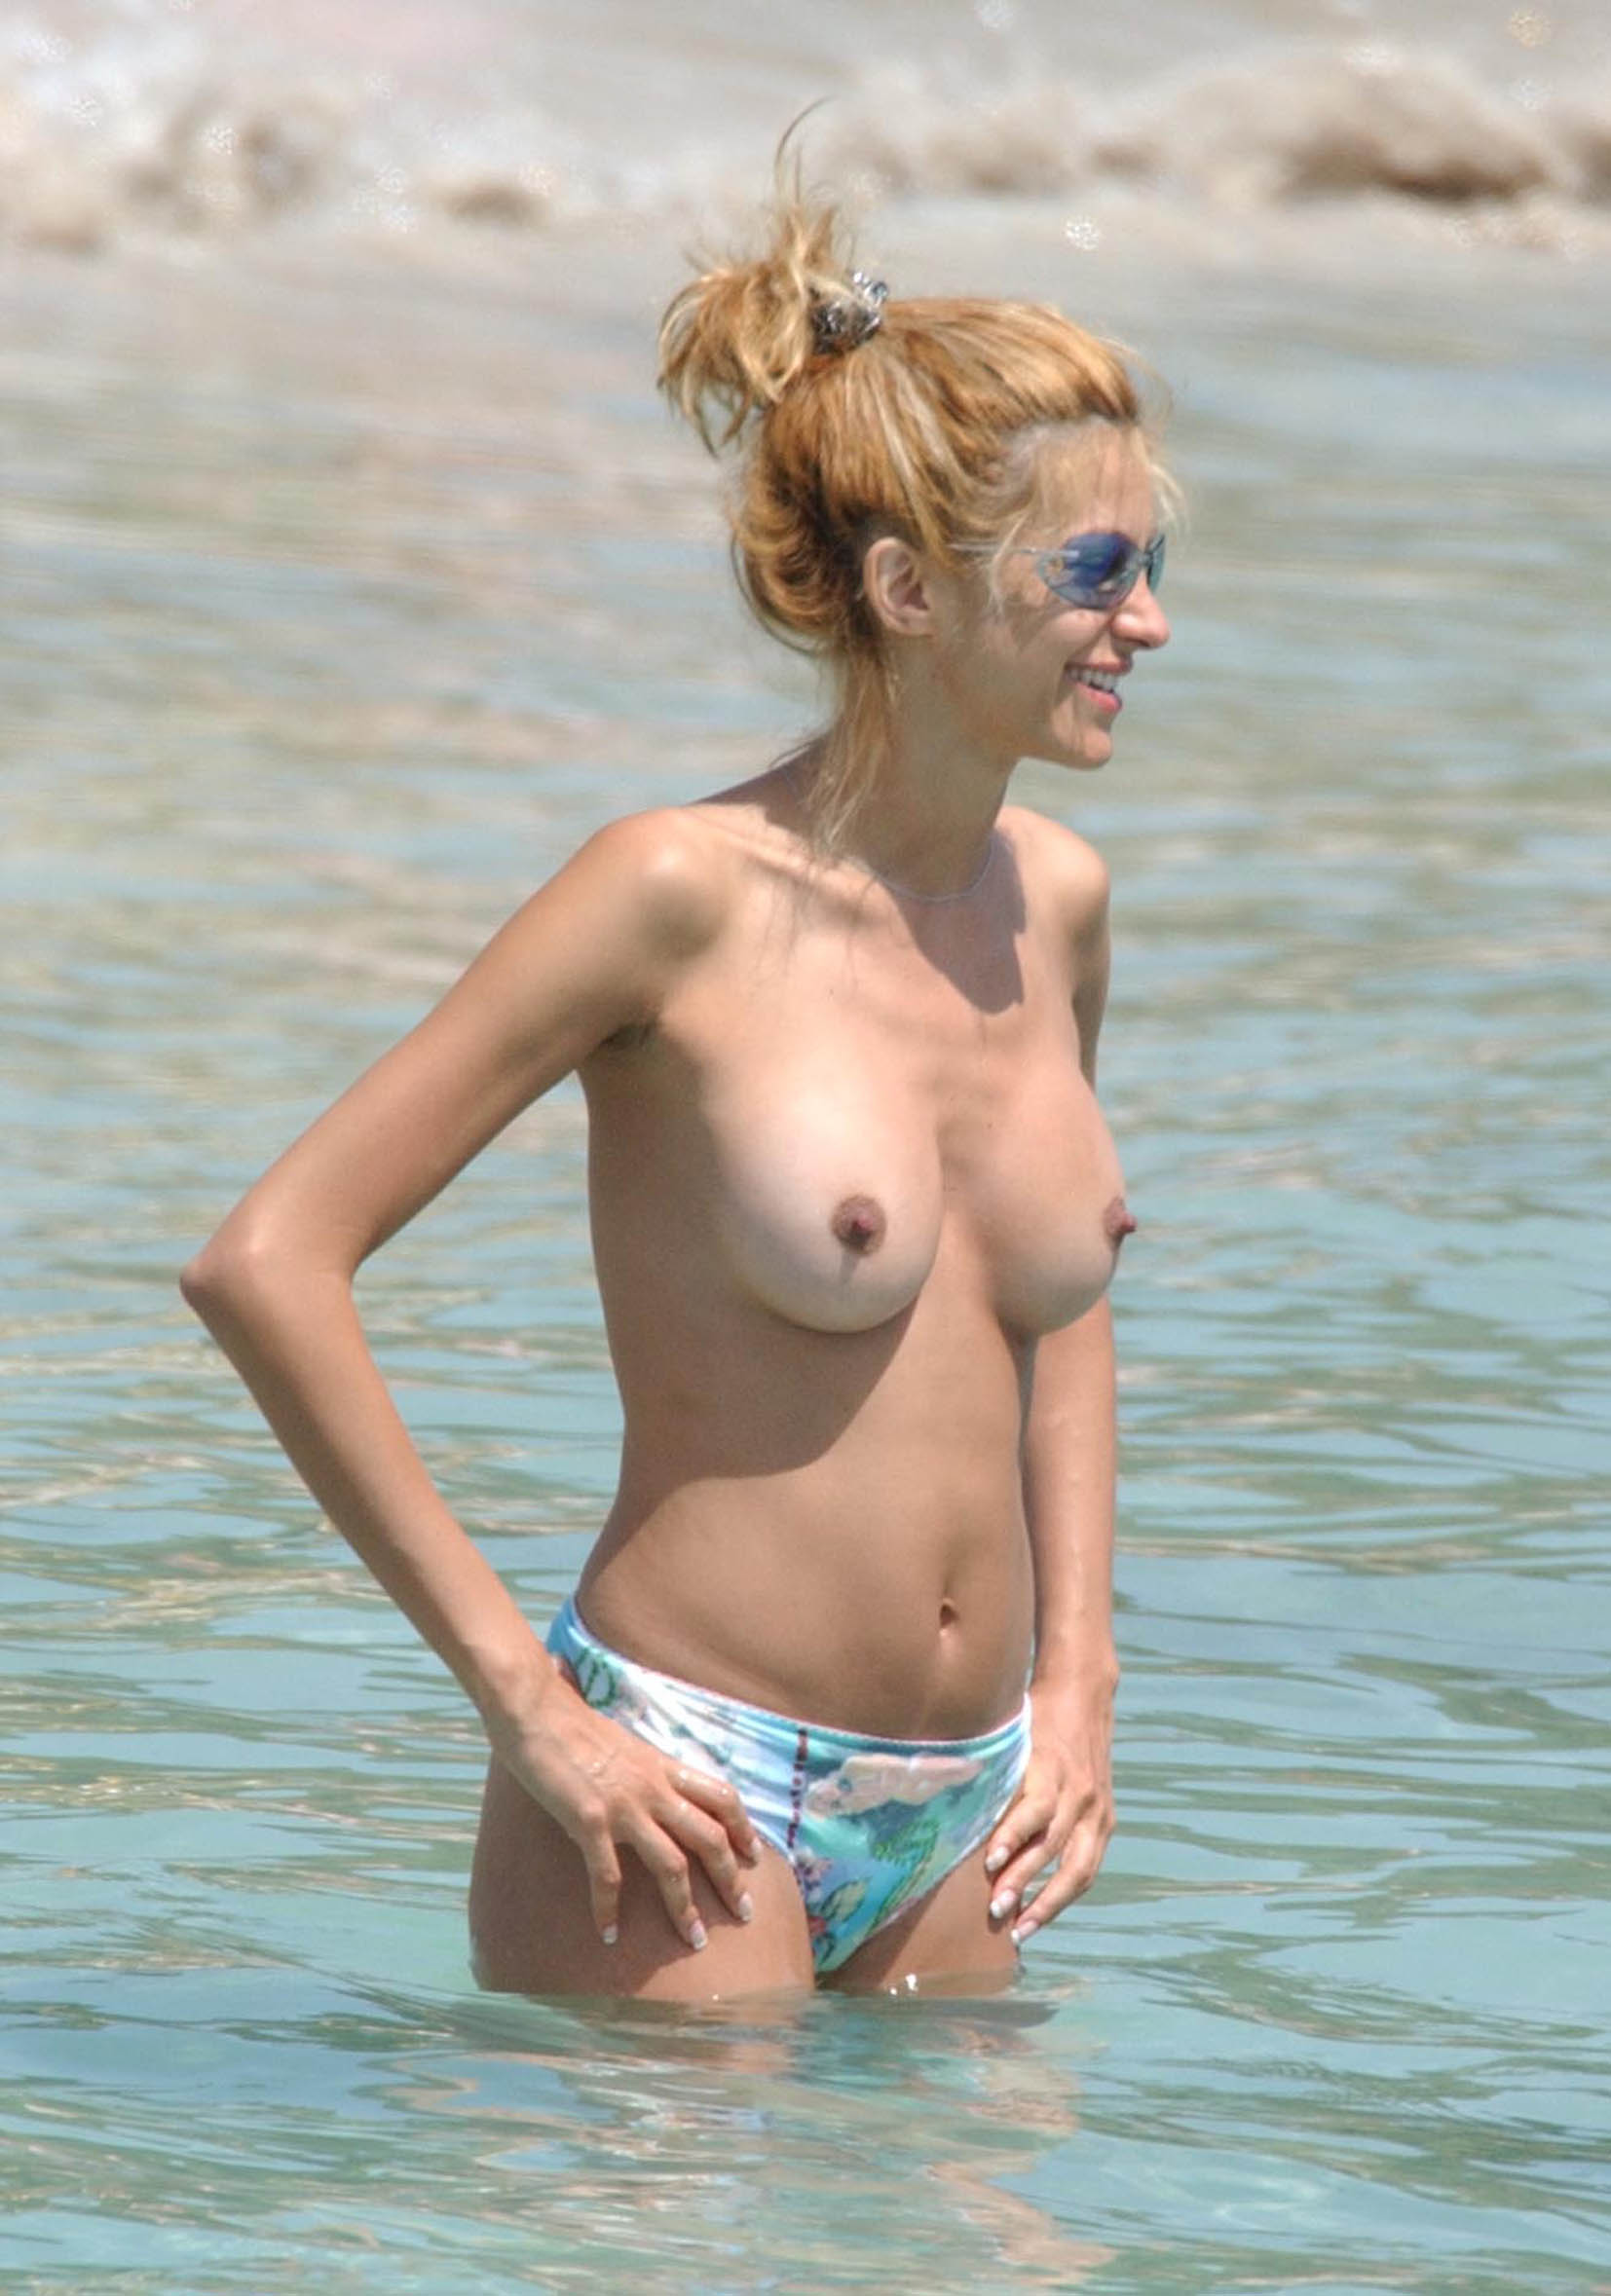 Free nude celebrity pictures hot babe joanna krupa shows her tits